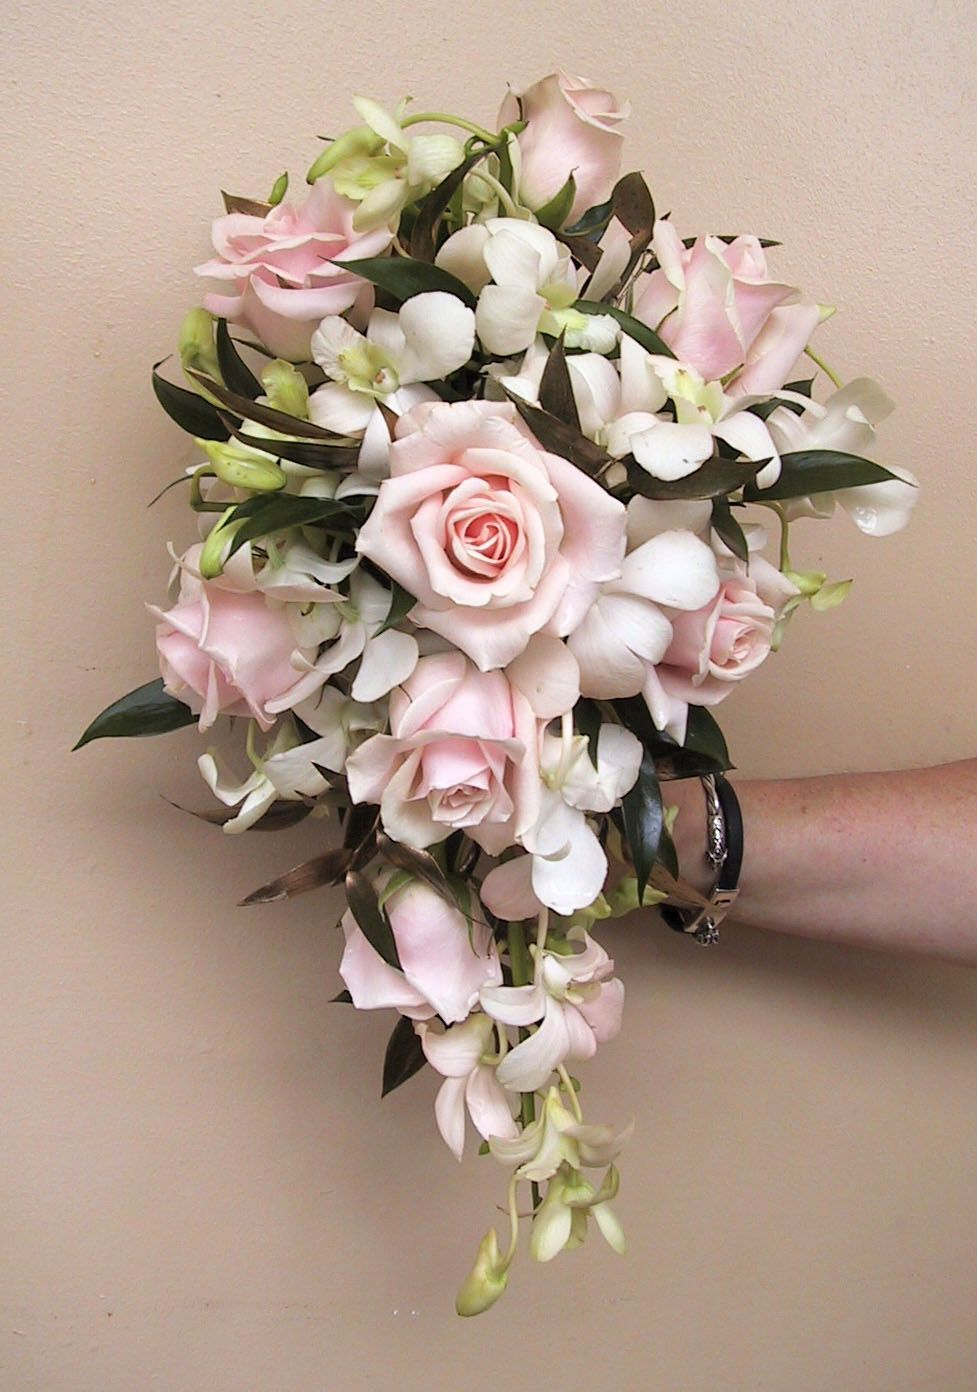 Cascade Wedding Bouquet With Pale Pink Roses And White Dendrobium Orchids Floral Kuhlmanns Flower Bouquet Wedding Wedding Bouquets Cascading Wedding Bouquets